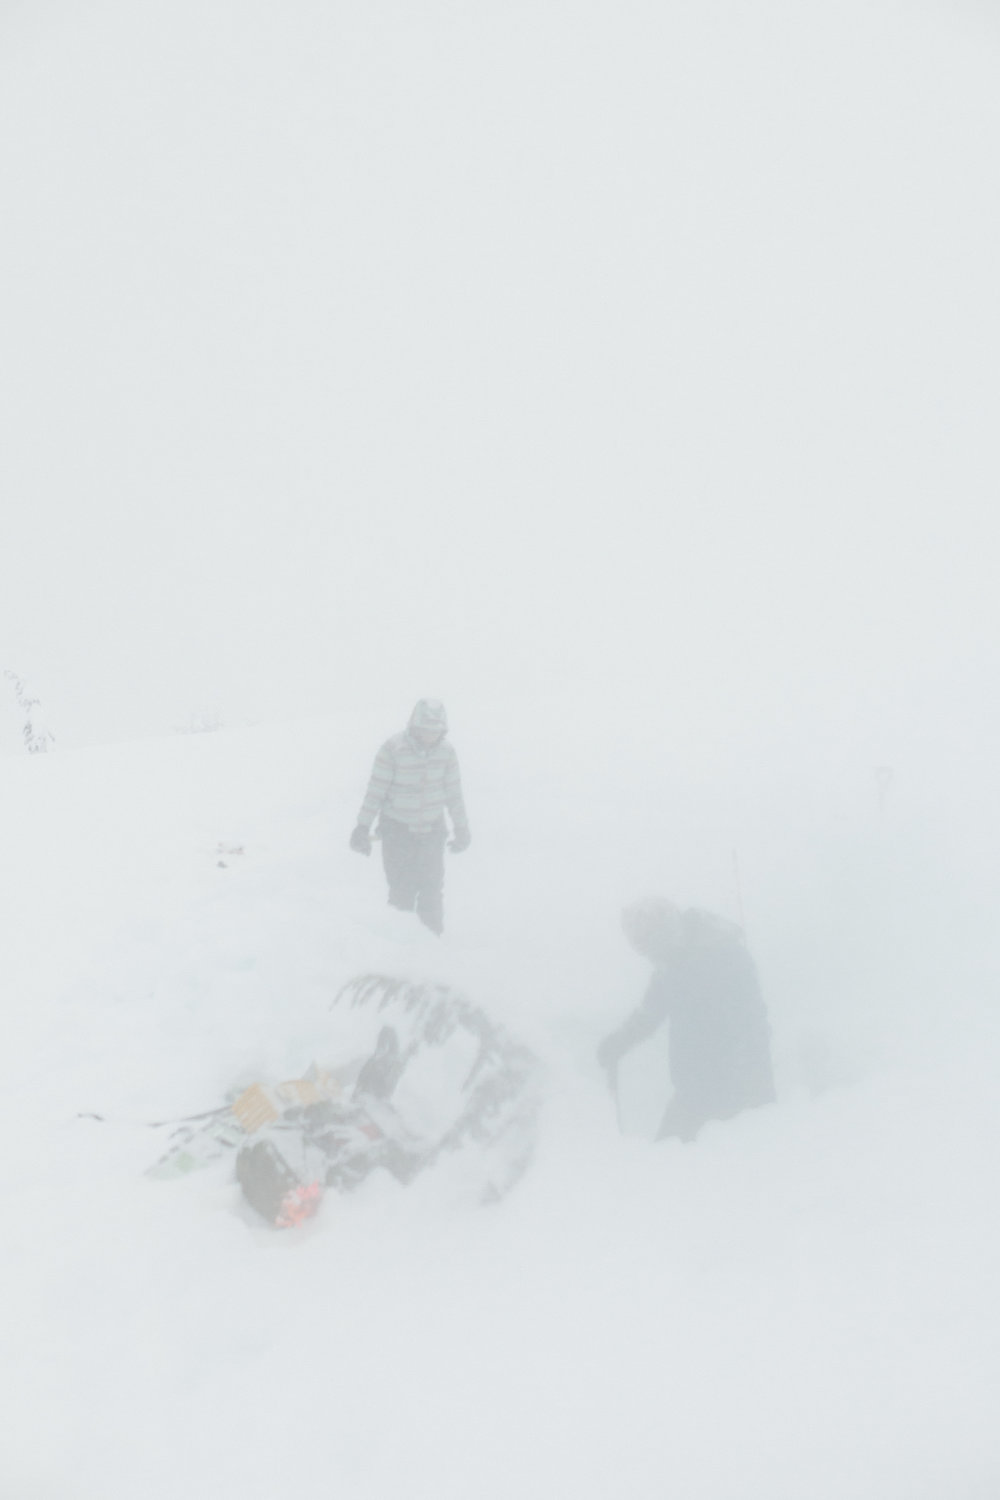 Making our snow-cave shelter in the storm